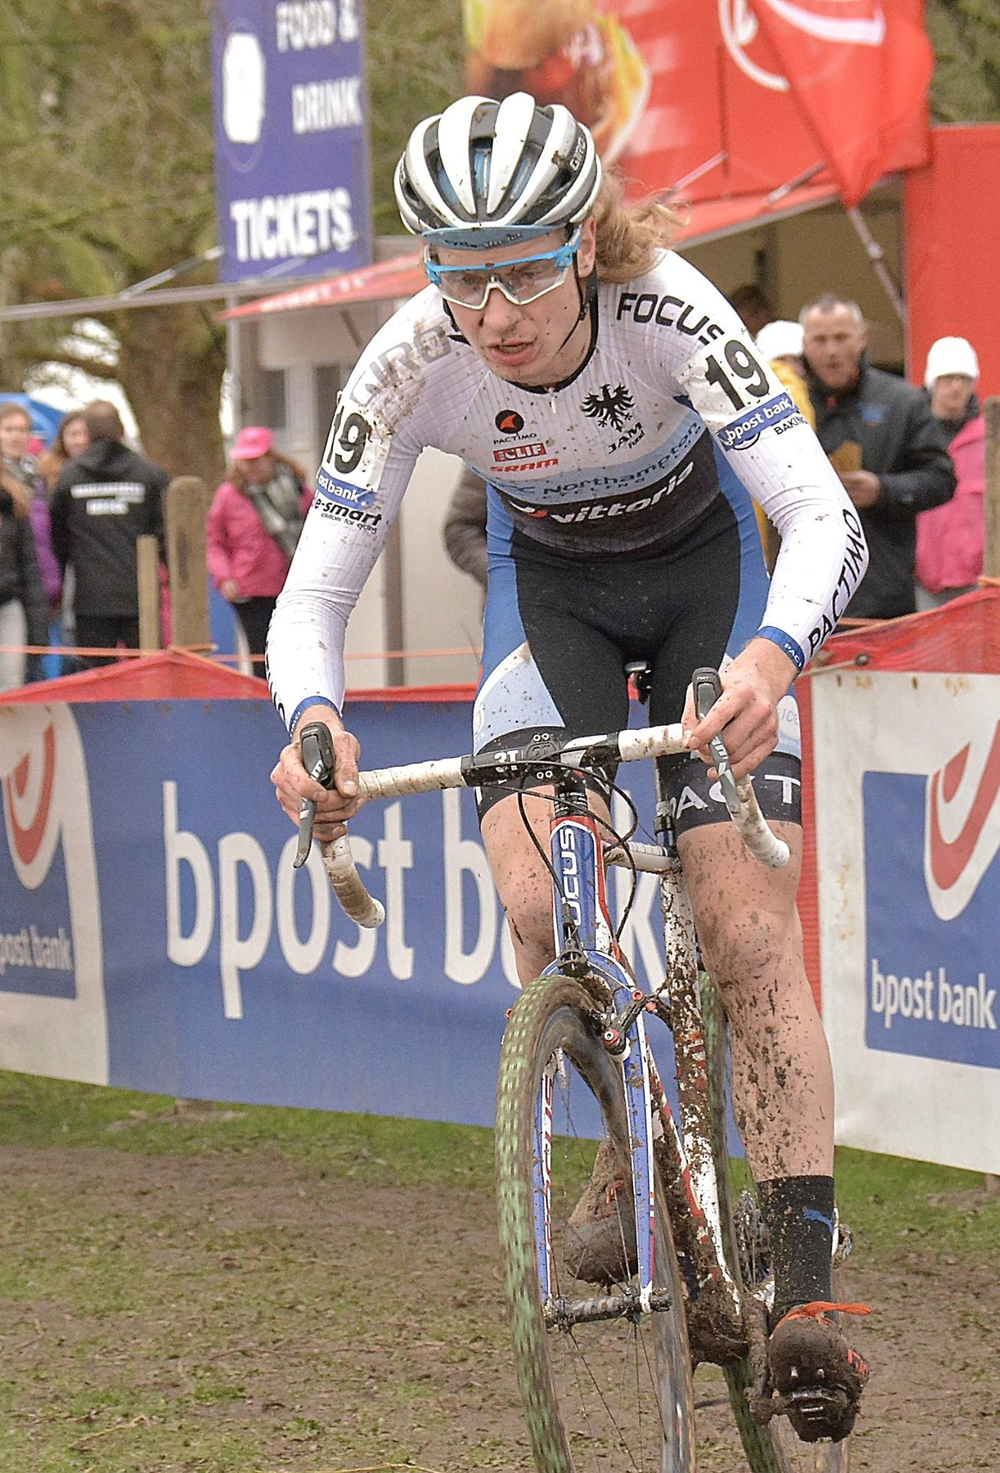 Scott Smith racing at Bpost Bank Trofee in Sint-Niklaas, Belgium on Feb. 6. Photo by Josef Cooreman.